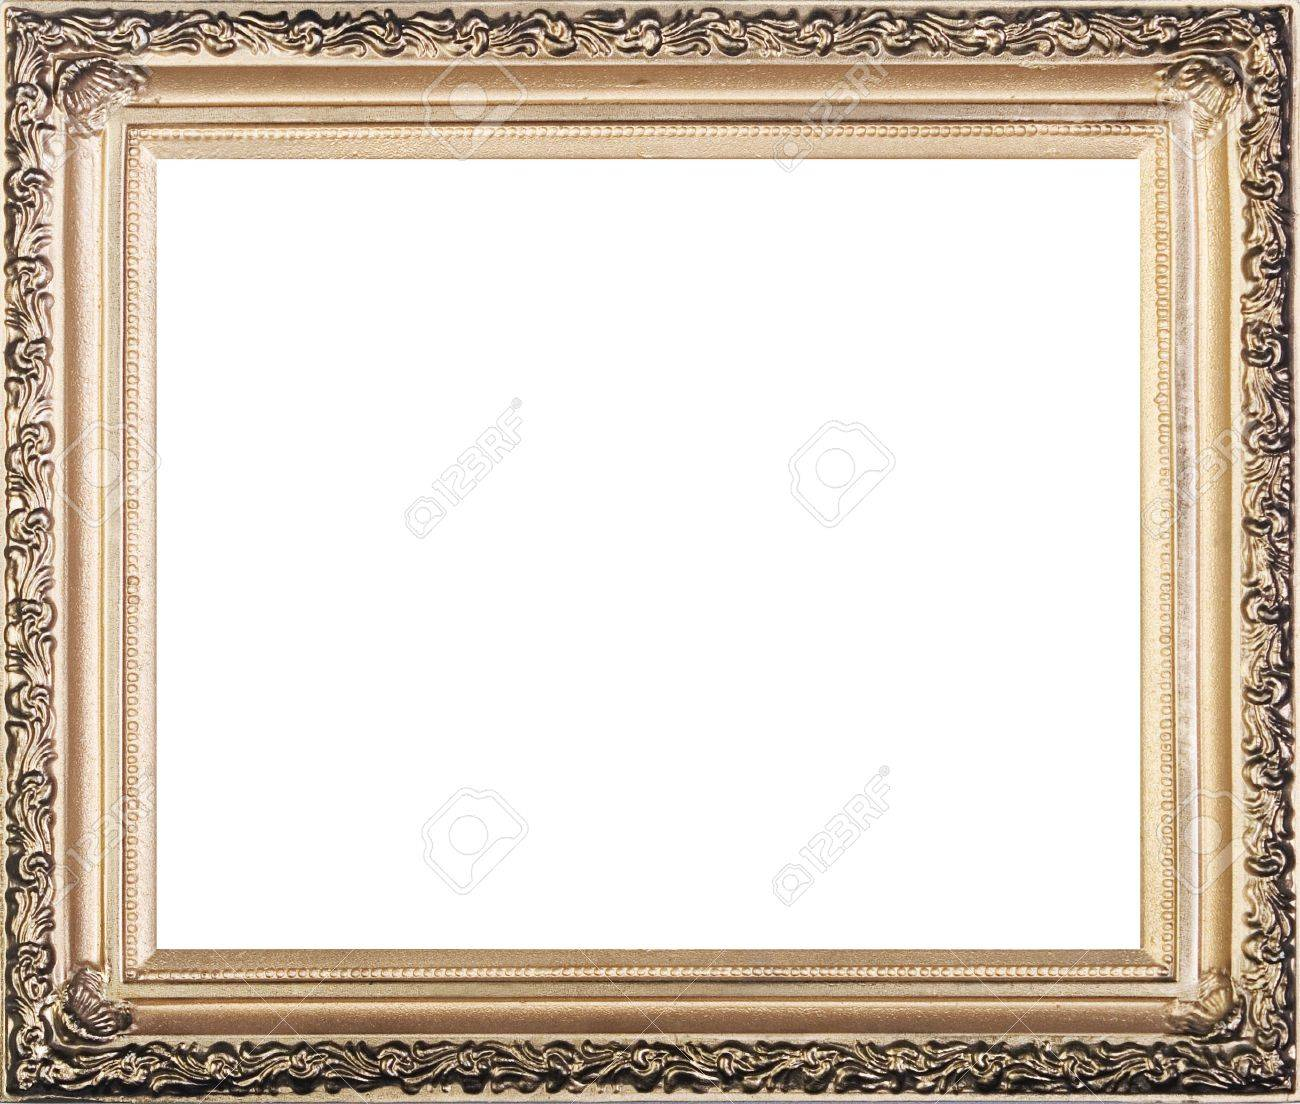 modern frame stock photo picture and royalty free image image  - modern frame stock photo